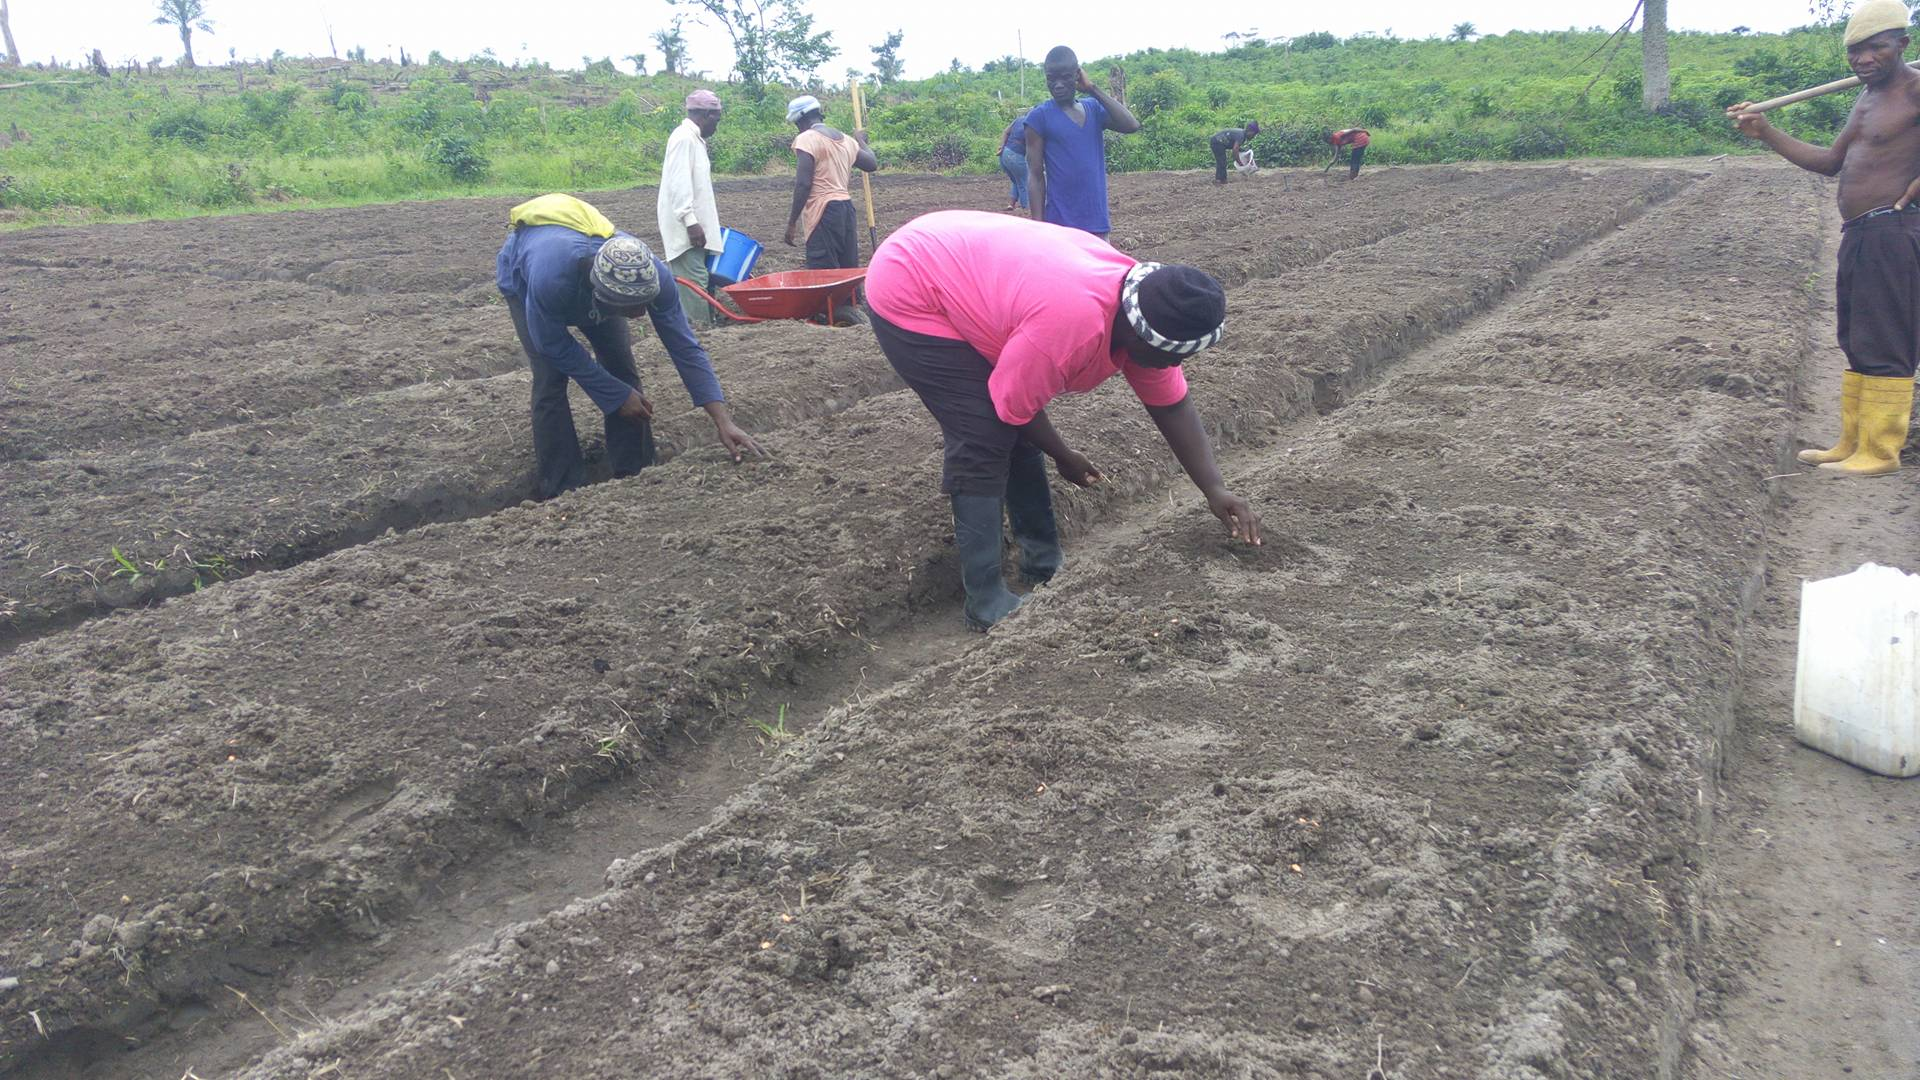 Planting the seeds Provision of Hope provided.